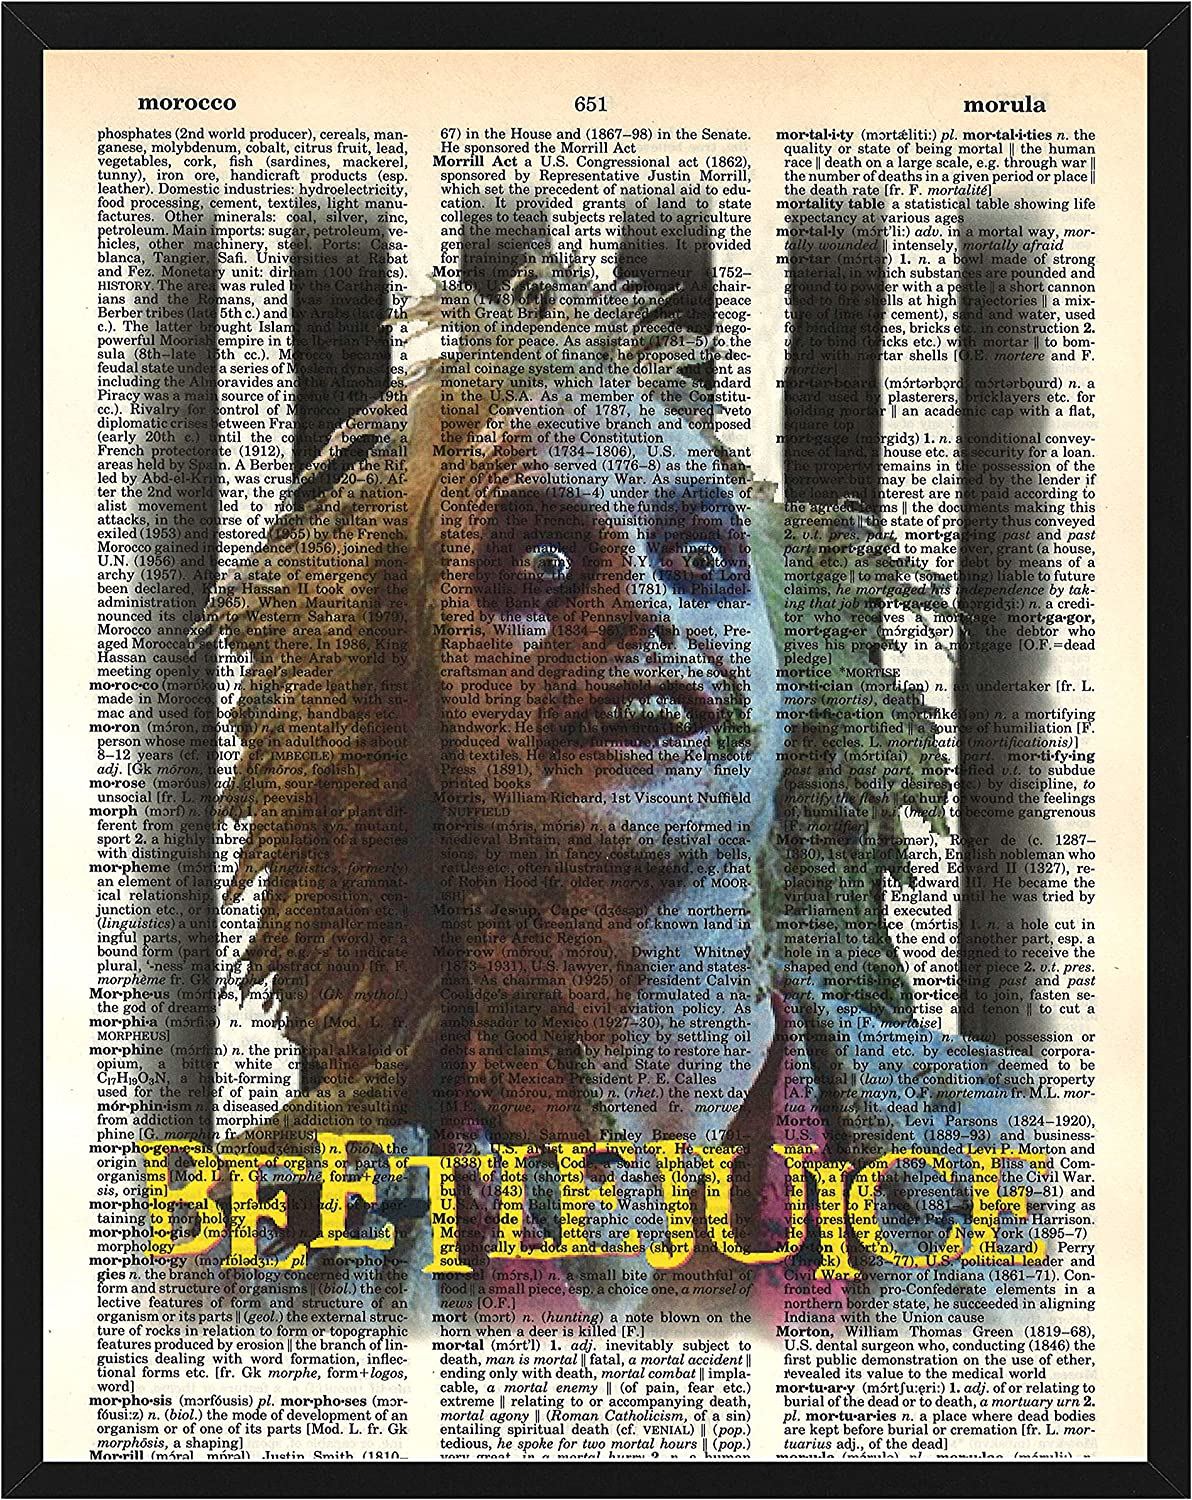 Beetlejuice Wall Decor Beetle Juice Dictionary Art 8 x 10 Print